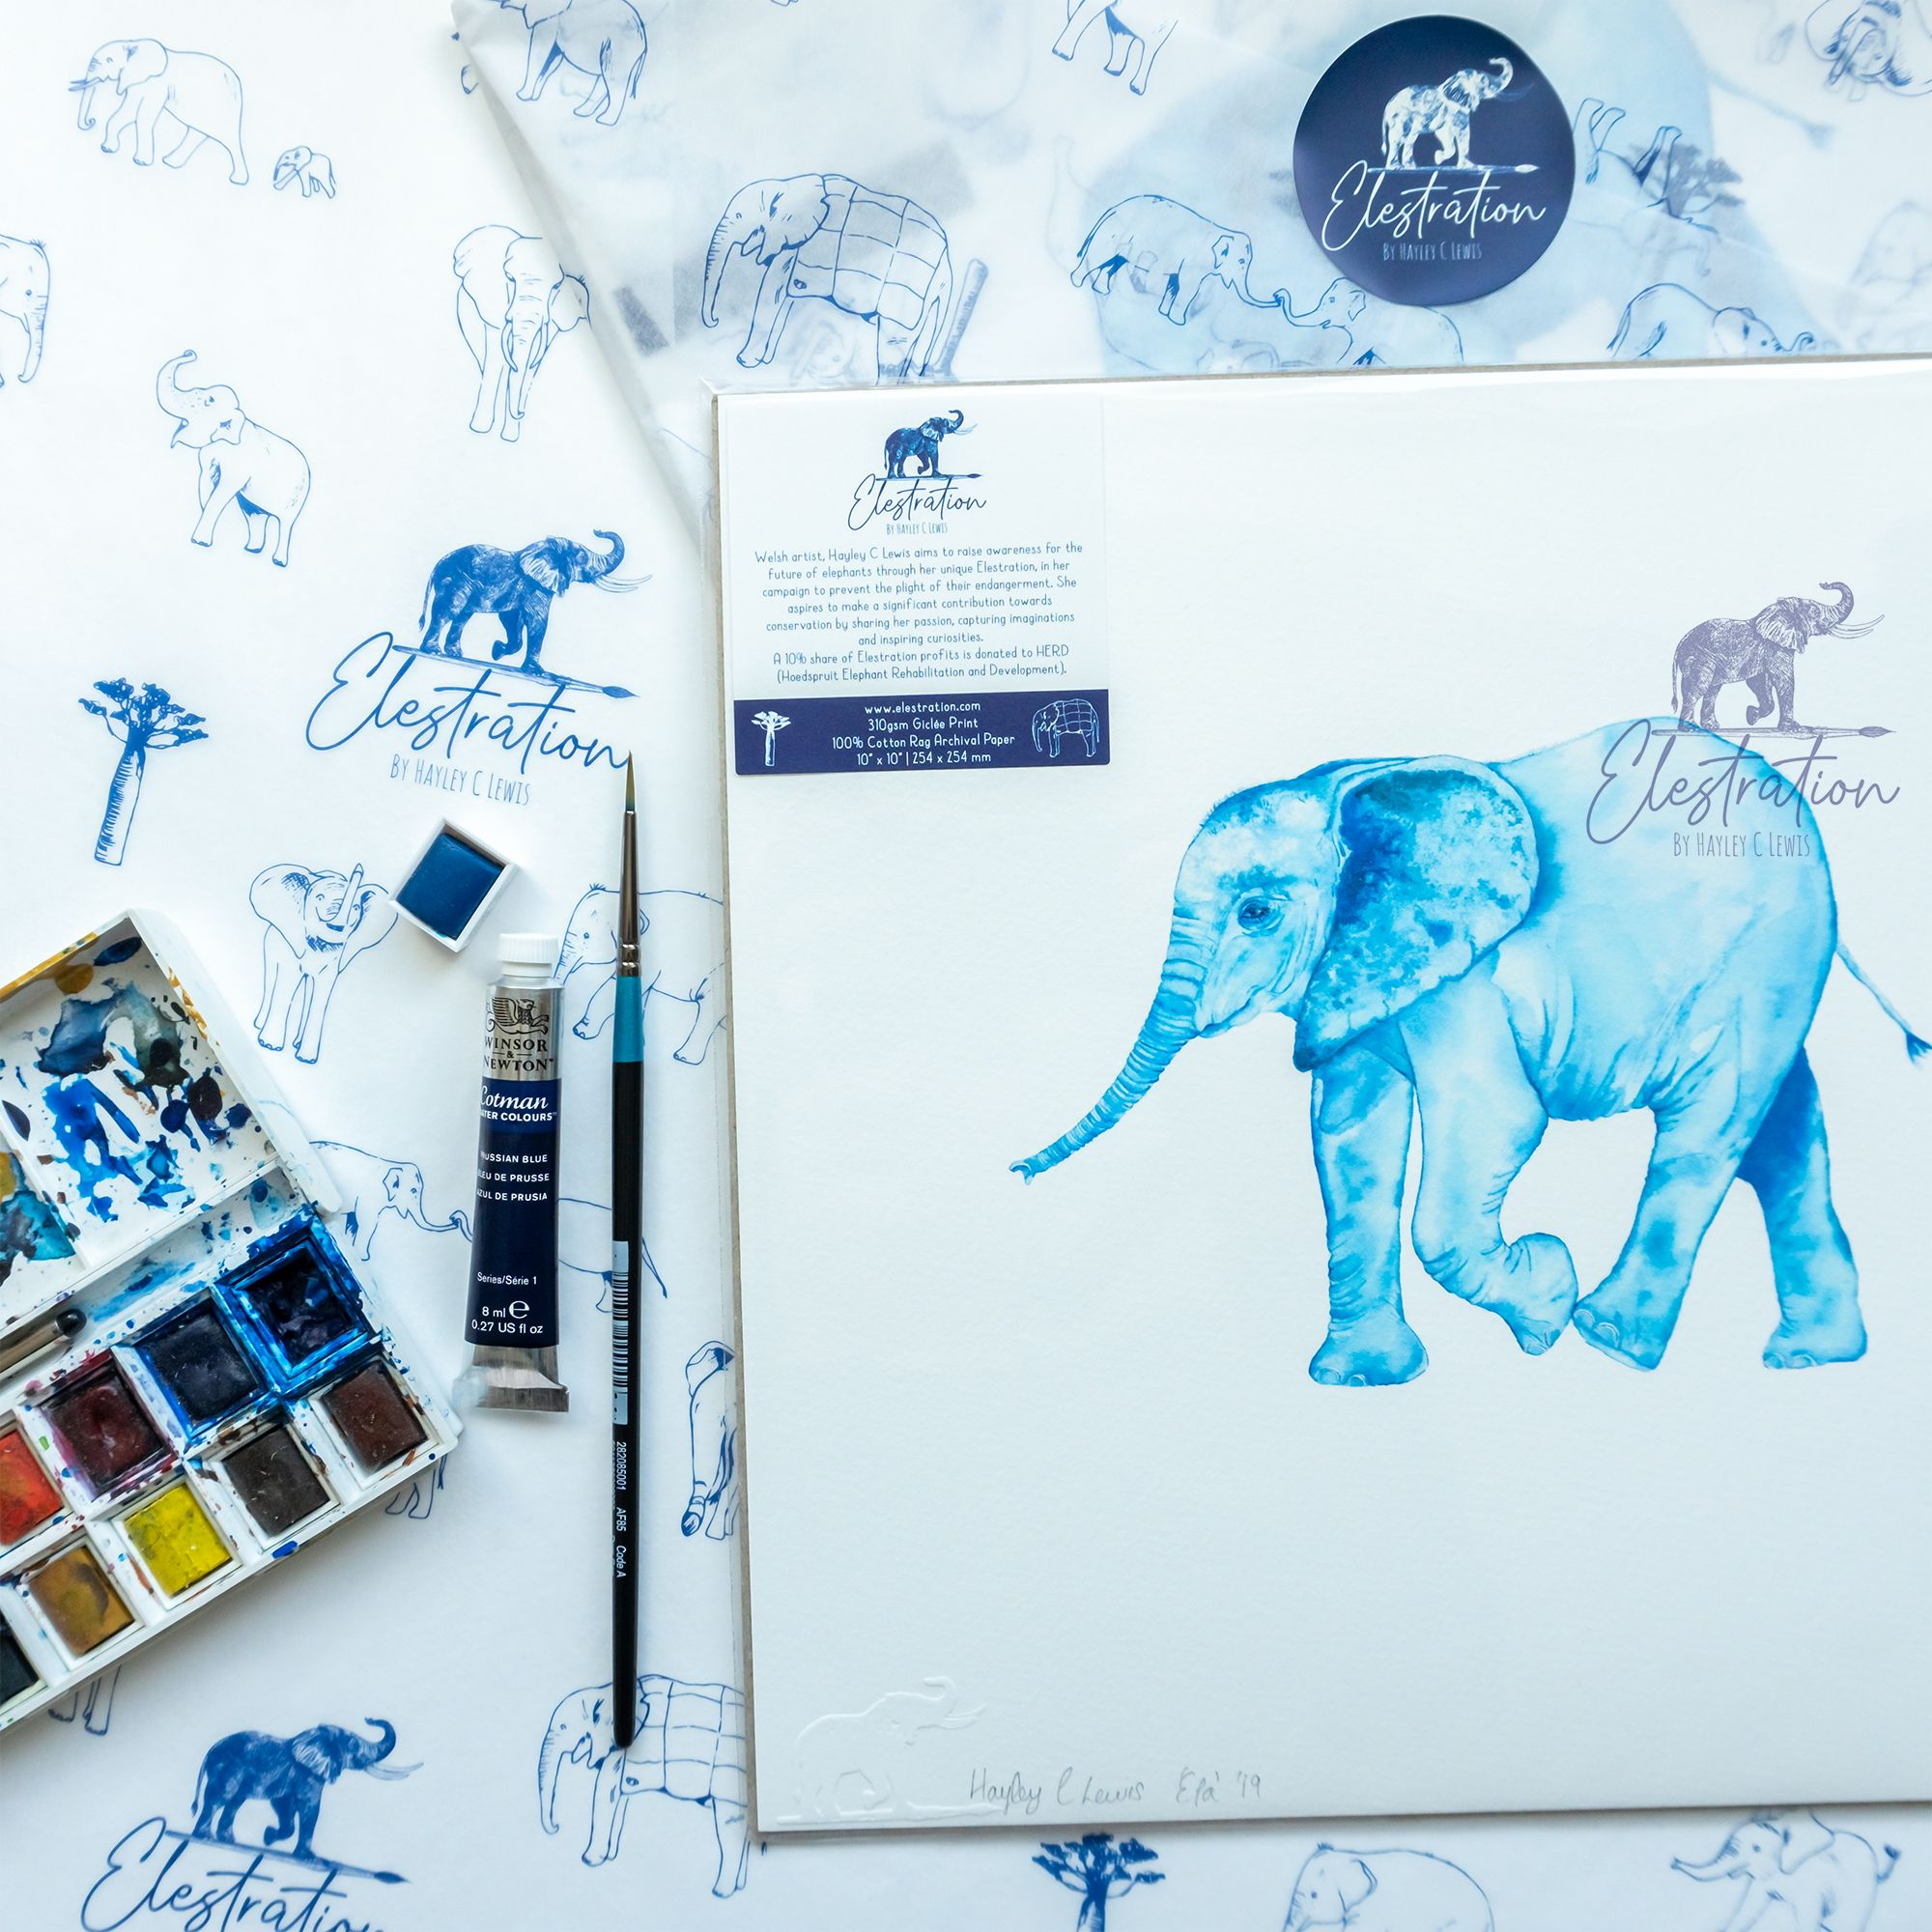 Elestration: Protecting Elephants Through Unique Art